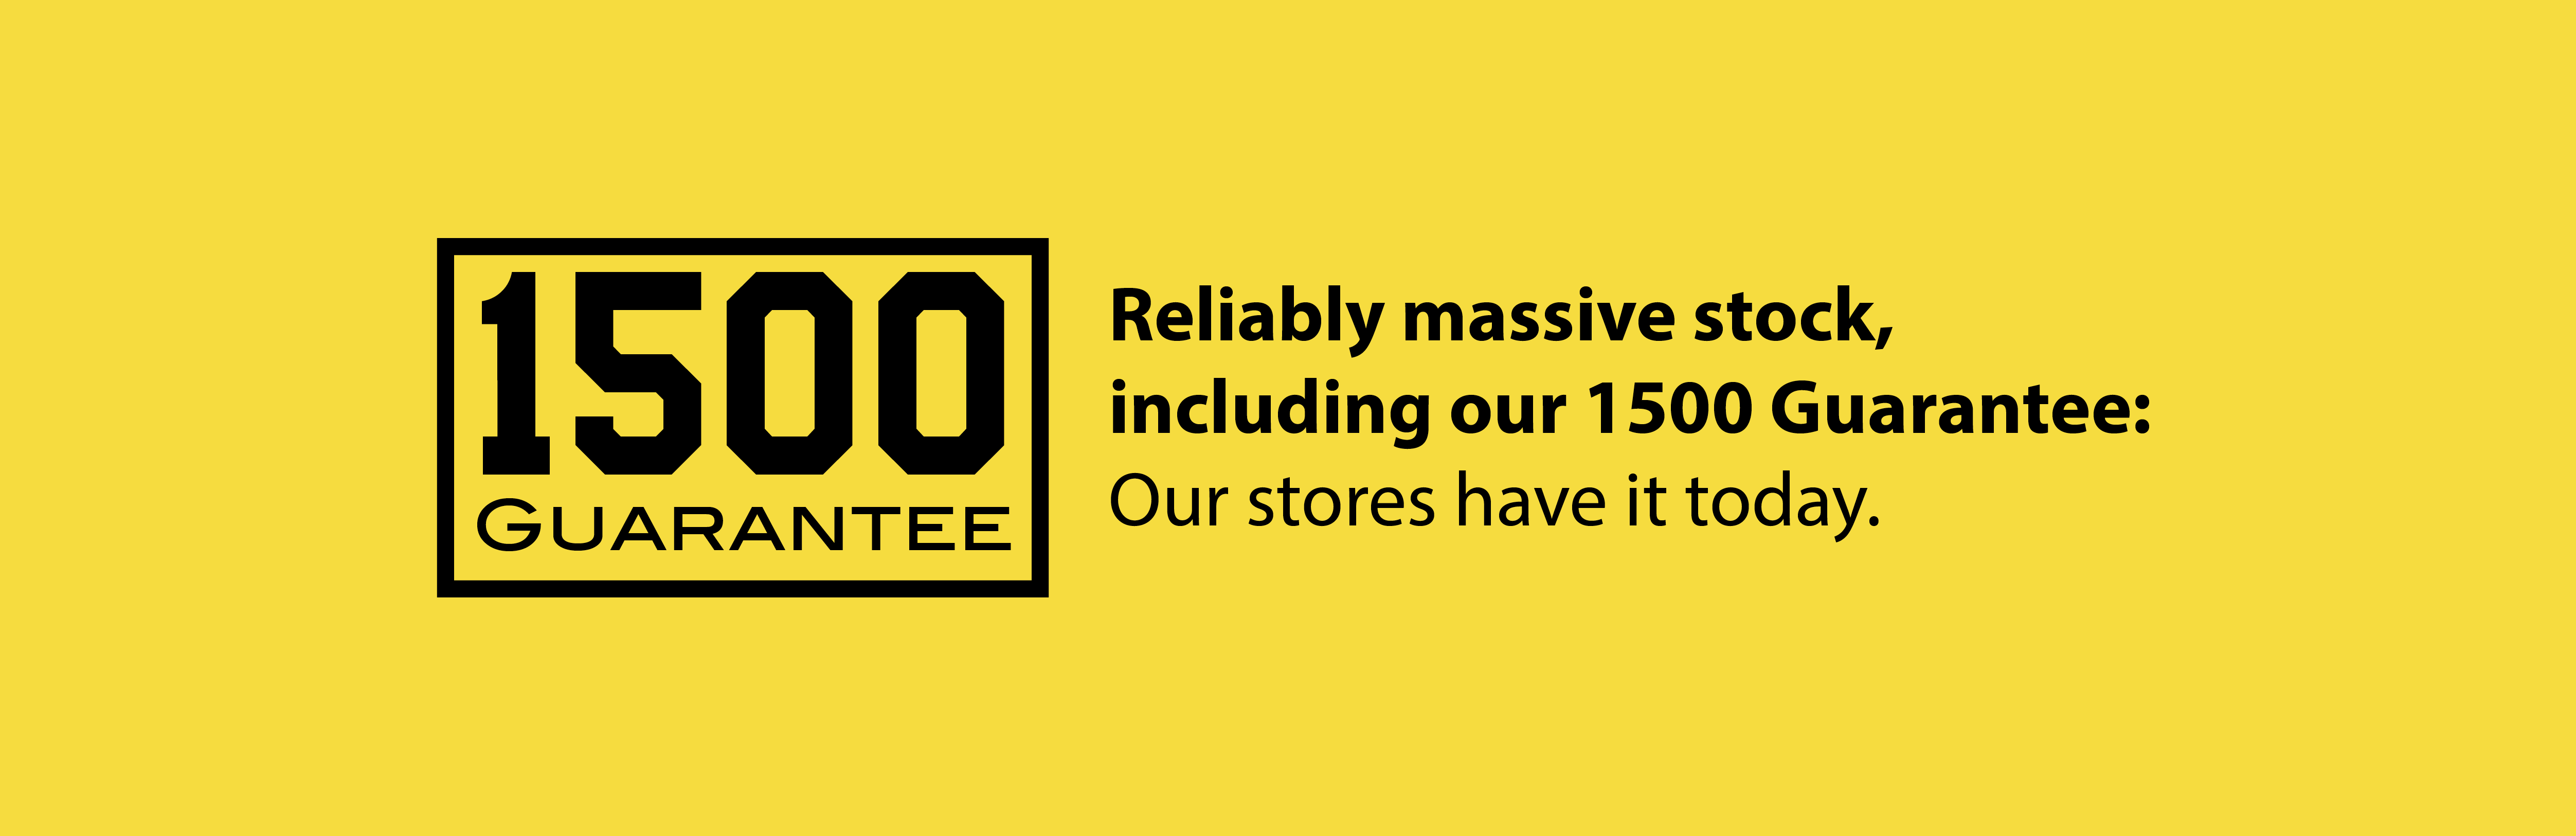 1500-guarantee which illustrates our stock that our stores will always have